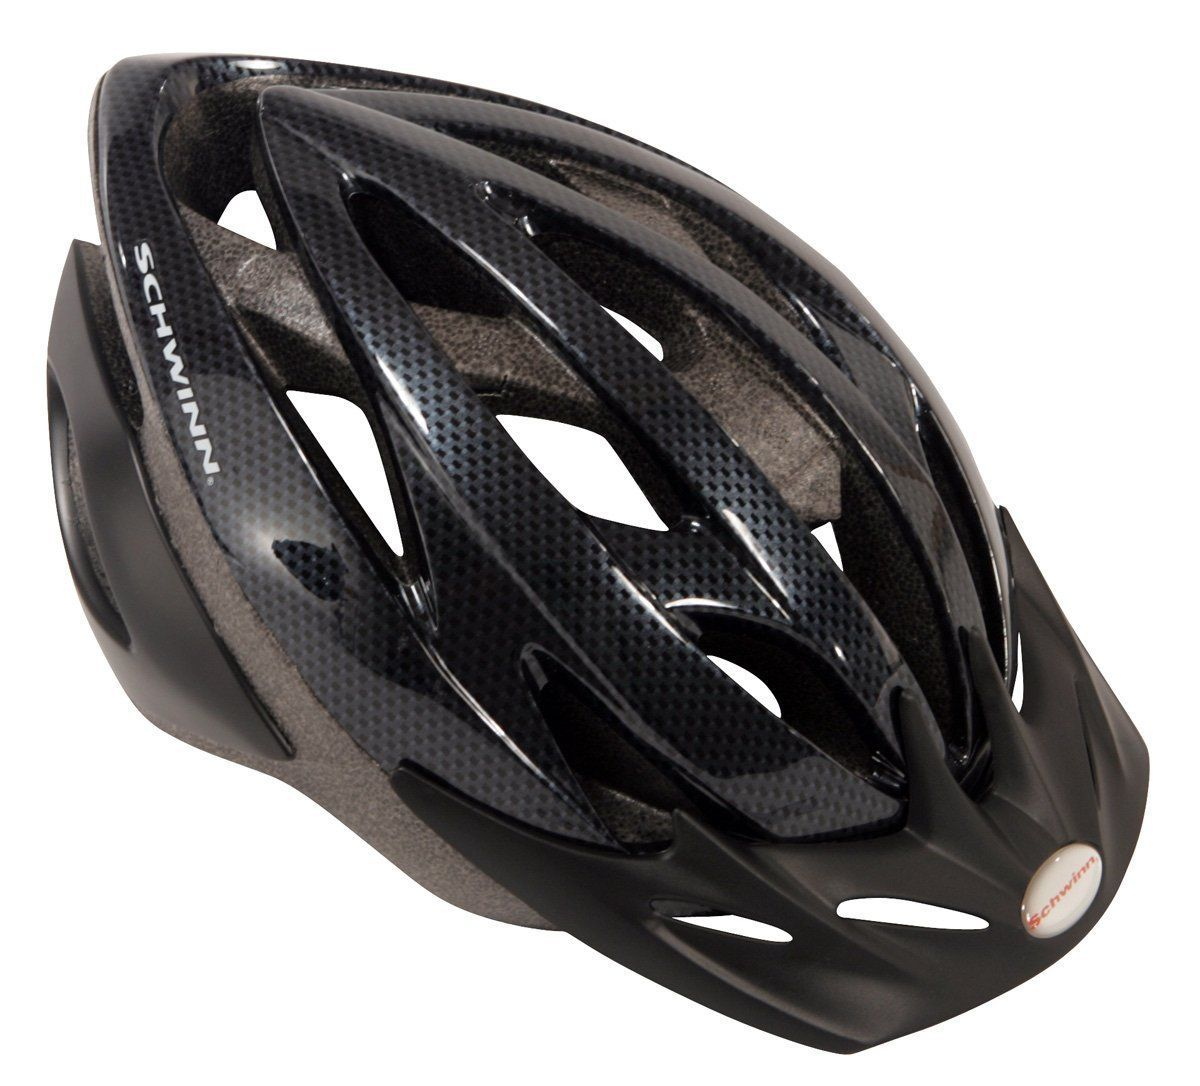 The Bike Helmet Comes With 21 Flow Vents And Moisture Wicking Pads